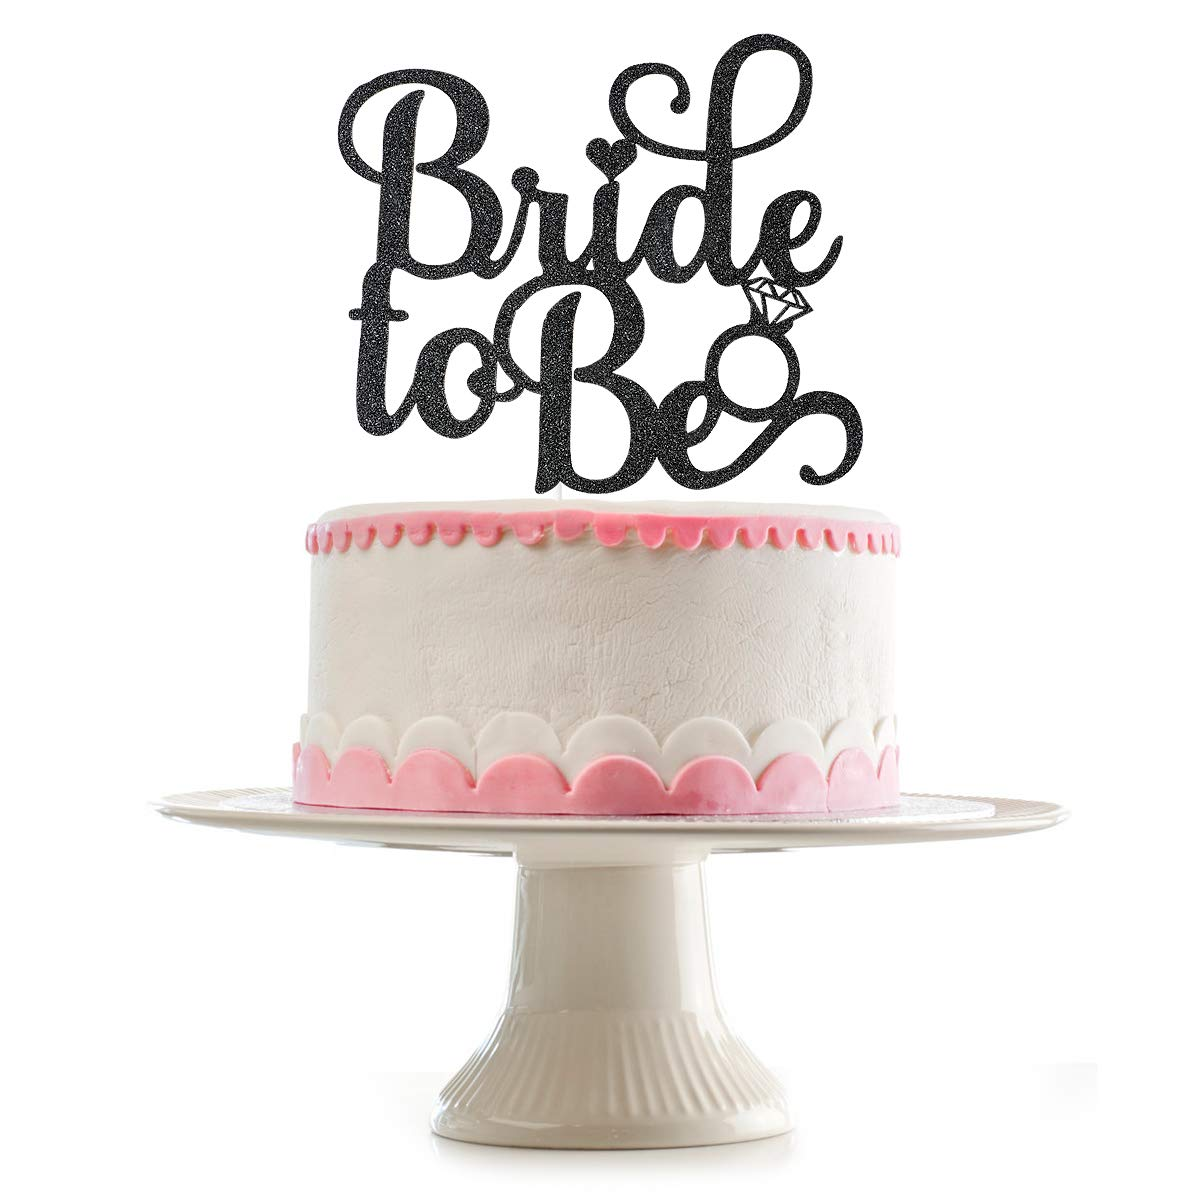 Black Glittery Bride To Be Cake Topper for Wedding Bachelorette Party Decoration Supplies